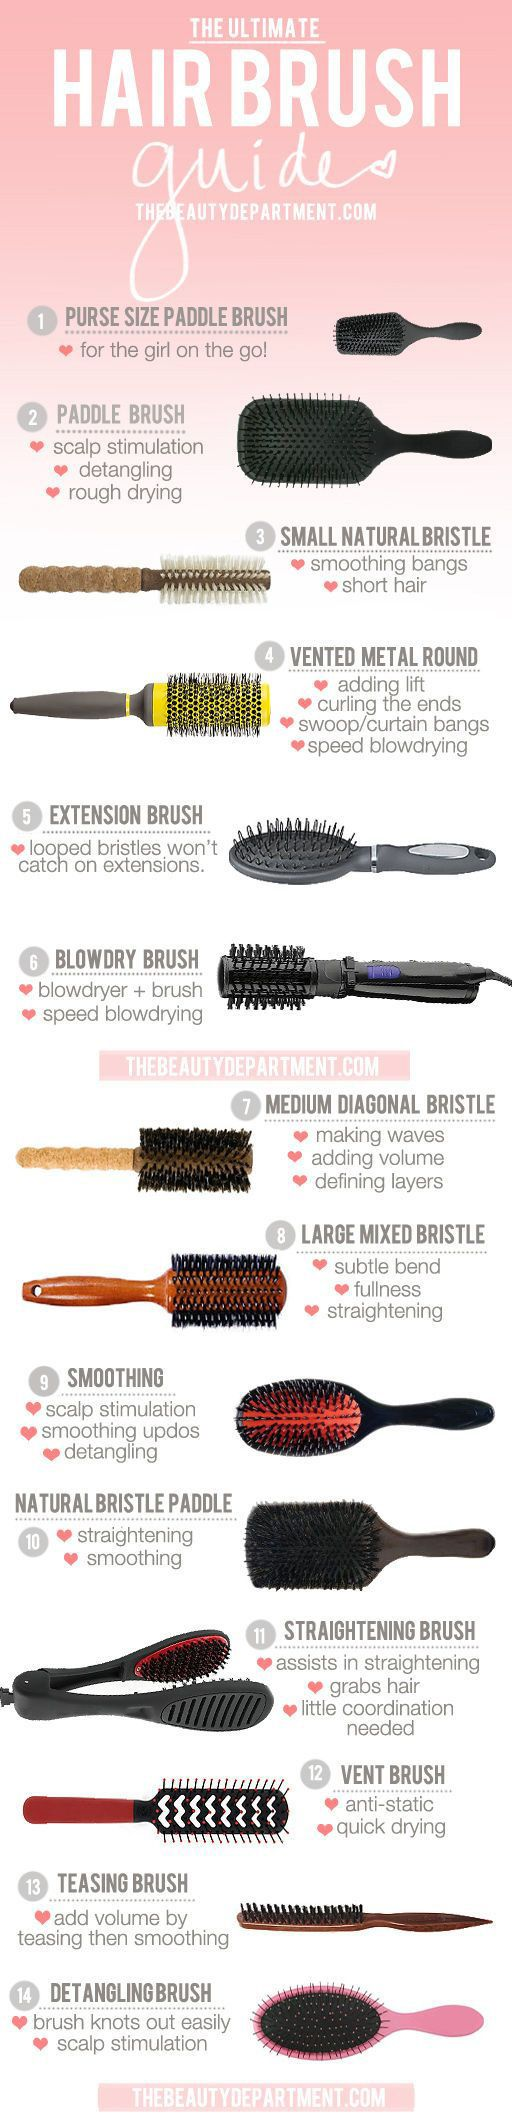 The Ultimate Hair Brush Guide